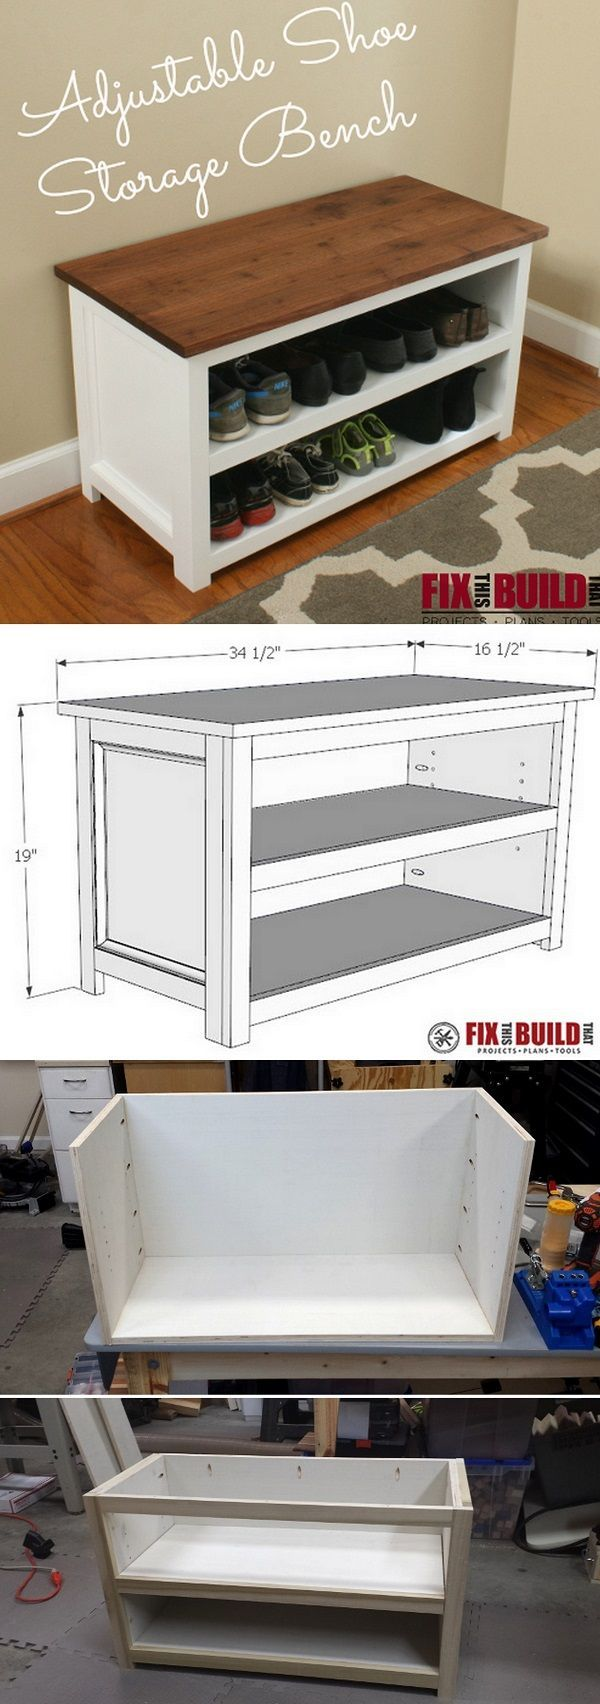 Check out how to build an adjustable DIY shoe storage bench ...